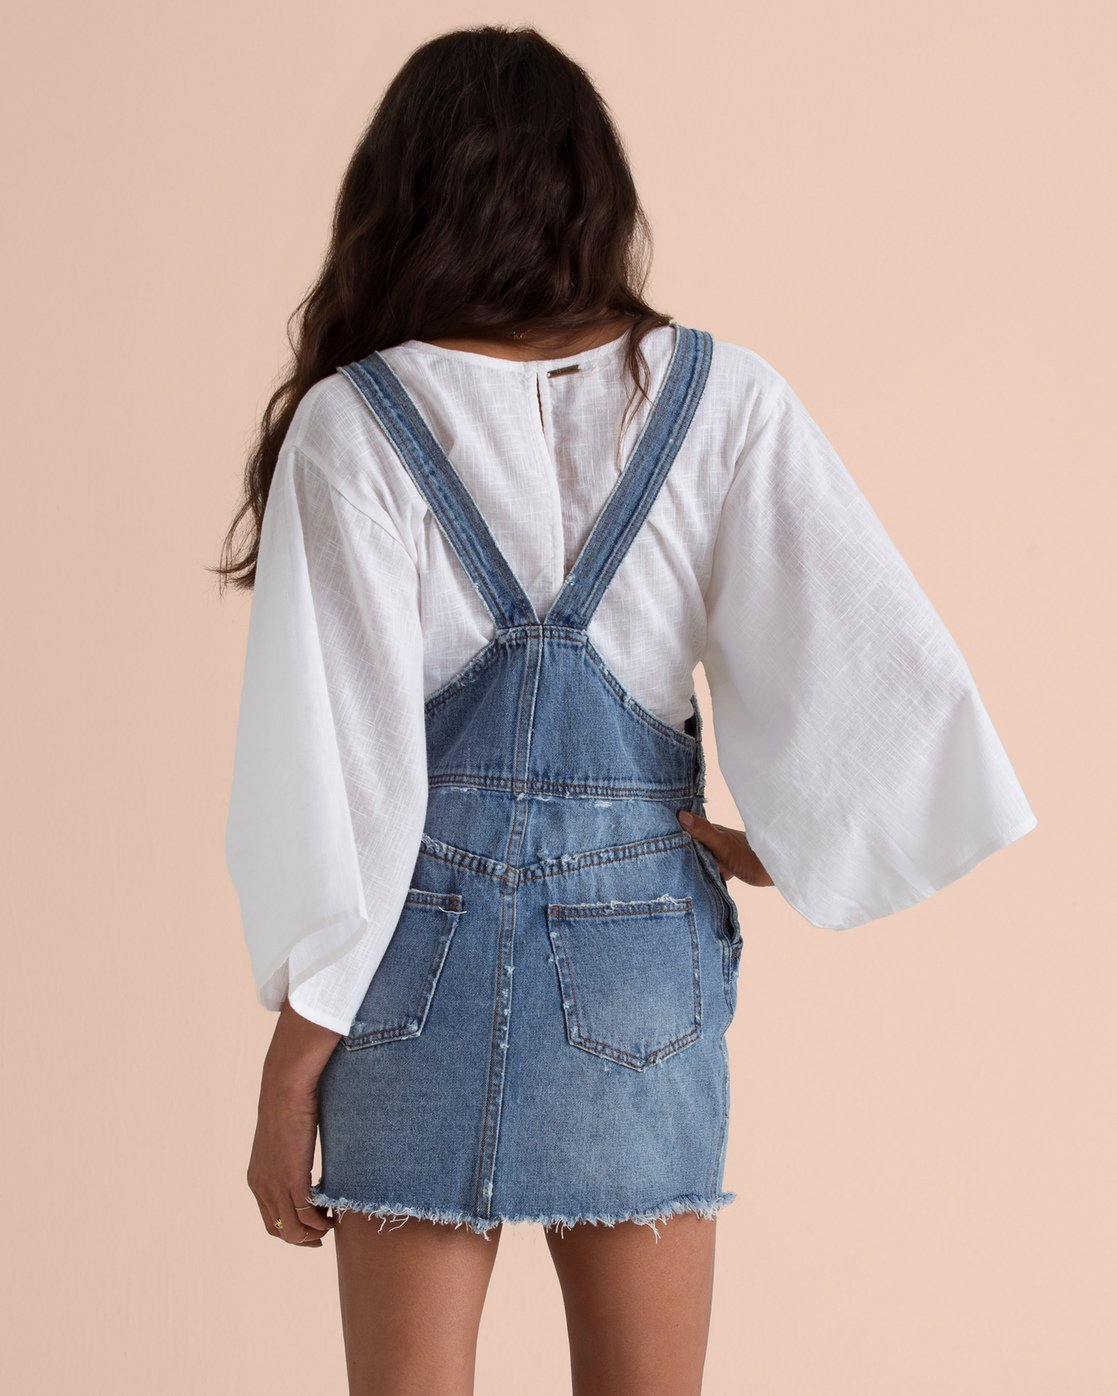 BILLABONG W'S DRESSES BILLABONG X SINCERELY JULES FADE AWAY DENIM SKIRT OVERALLS